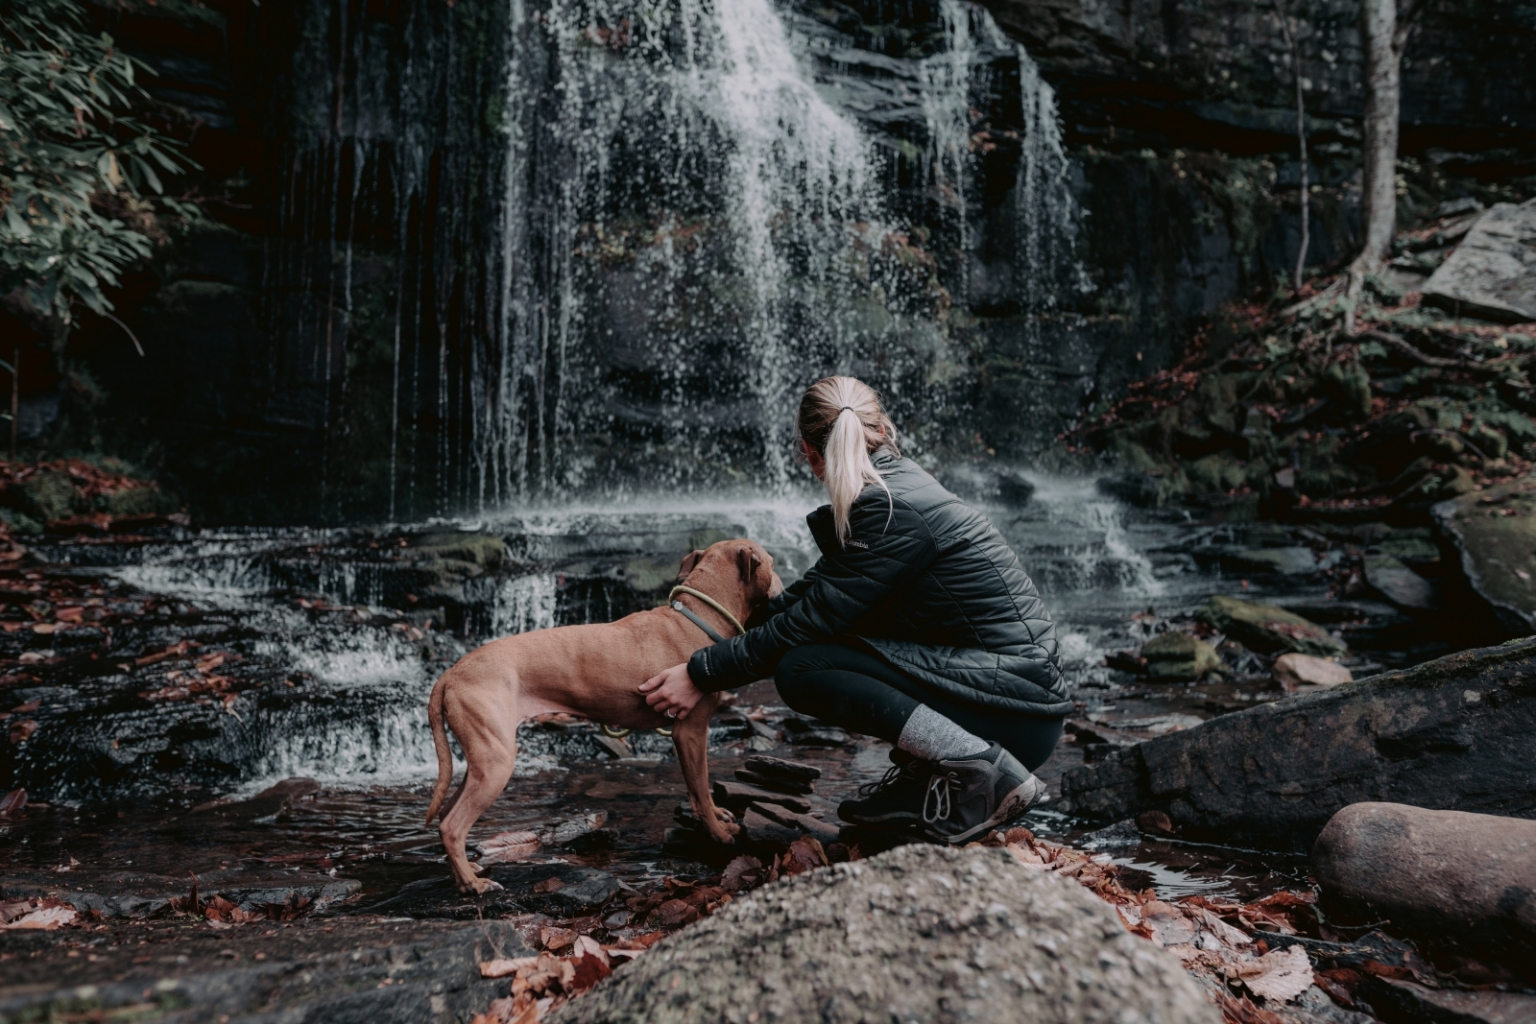 Hiking with a pitbull dog